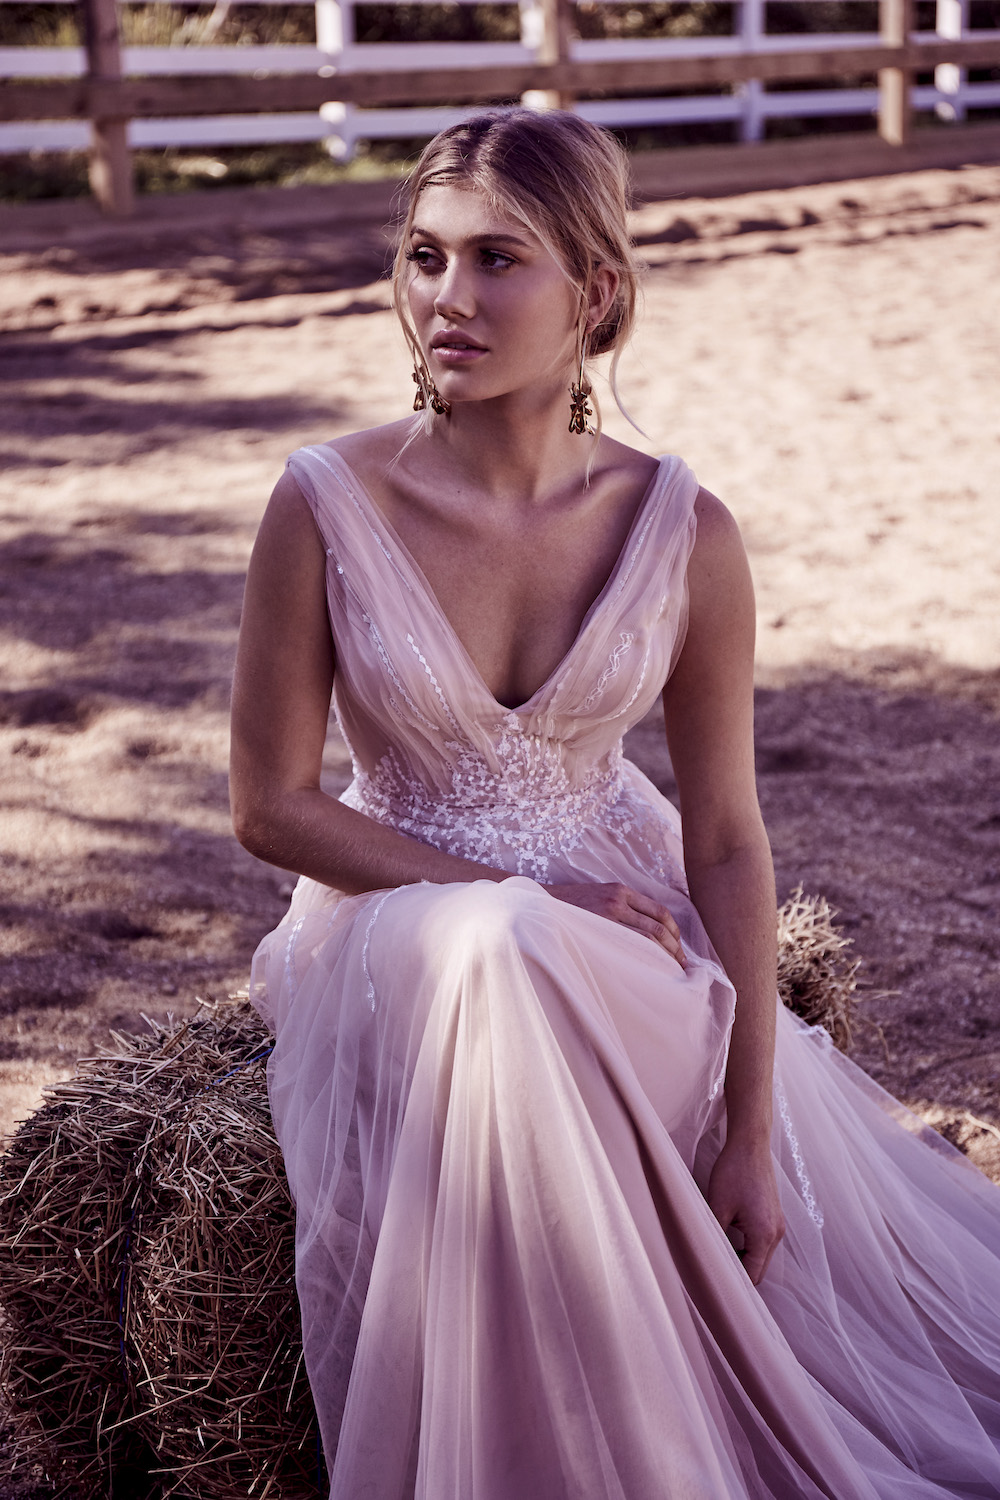 Moira Hughes Casey wedding dress | Wedding dresses under $7,500 | LOVE FIND CO. Bridal Directory